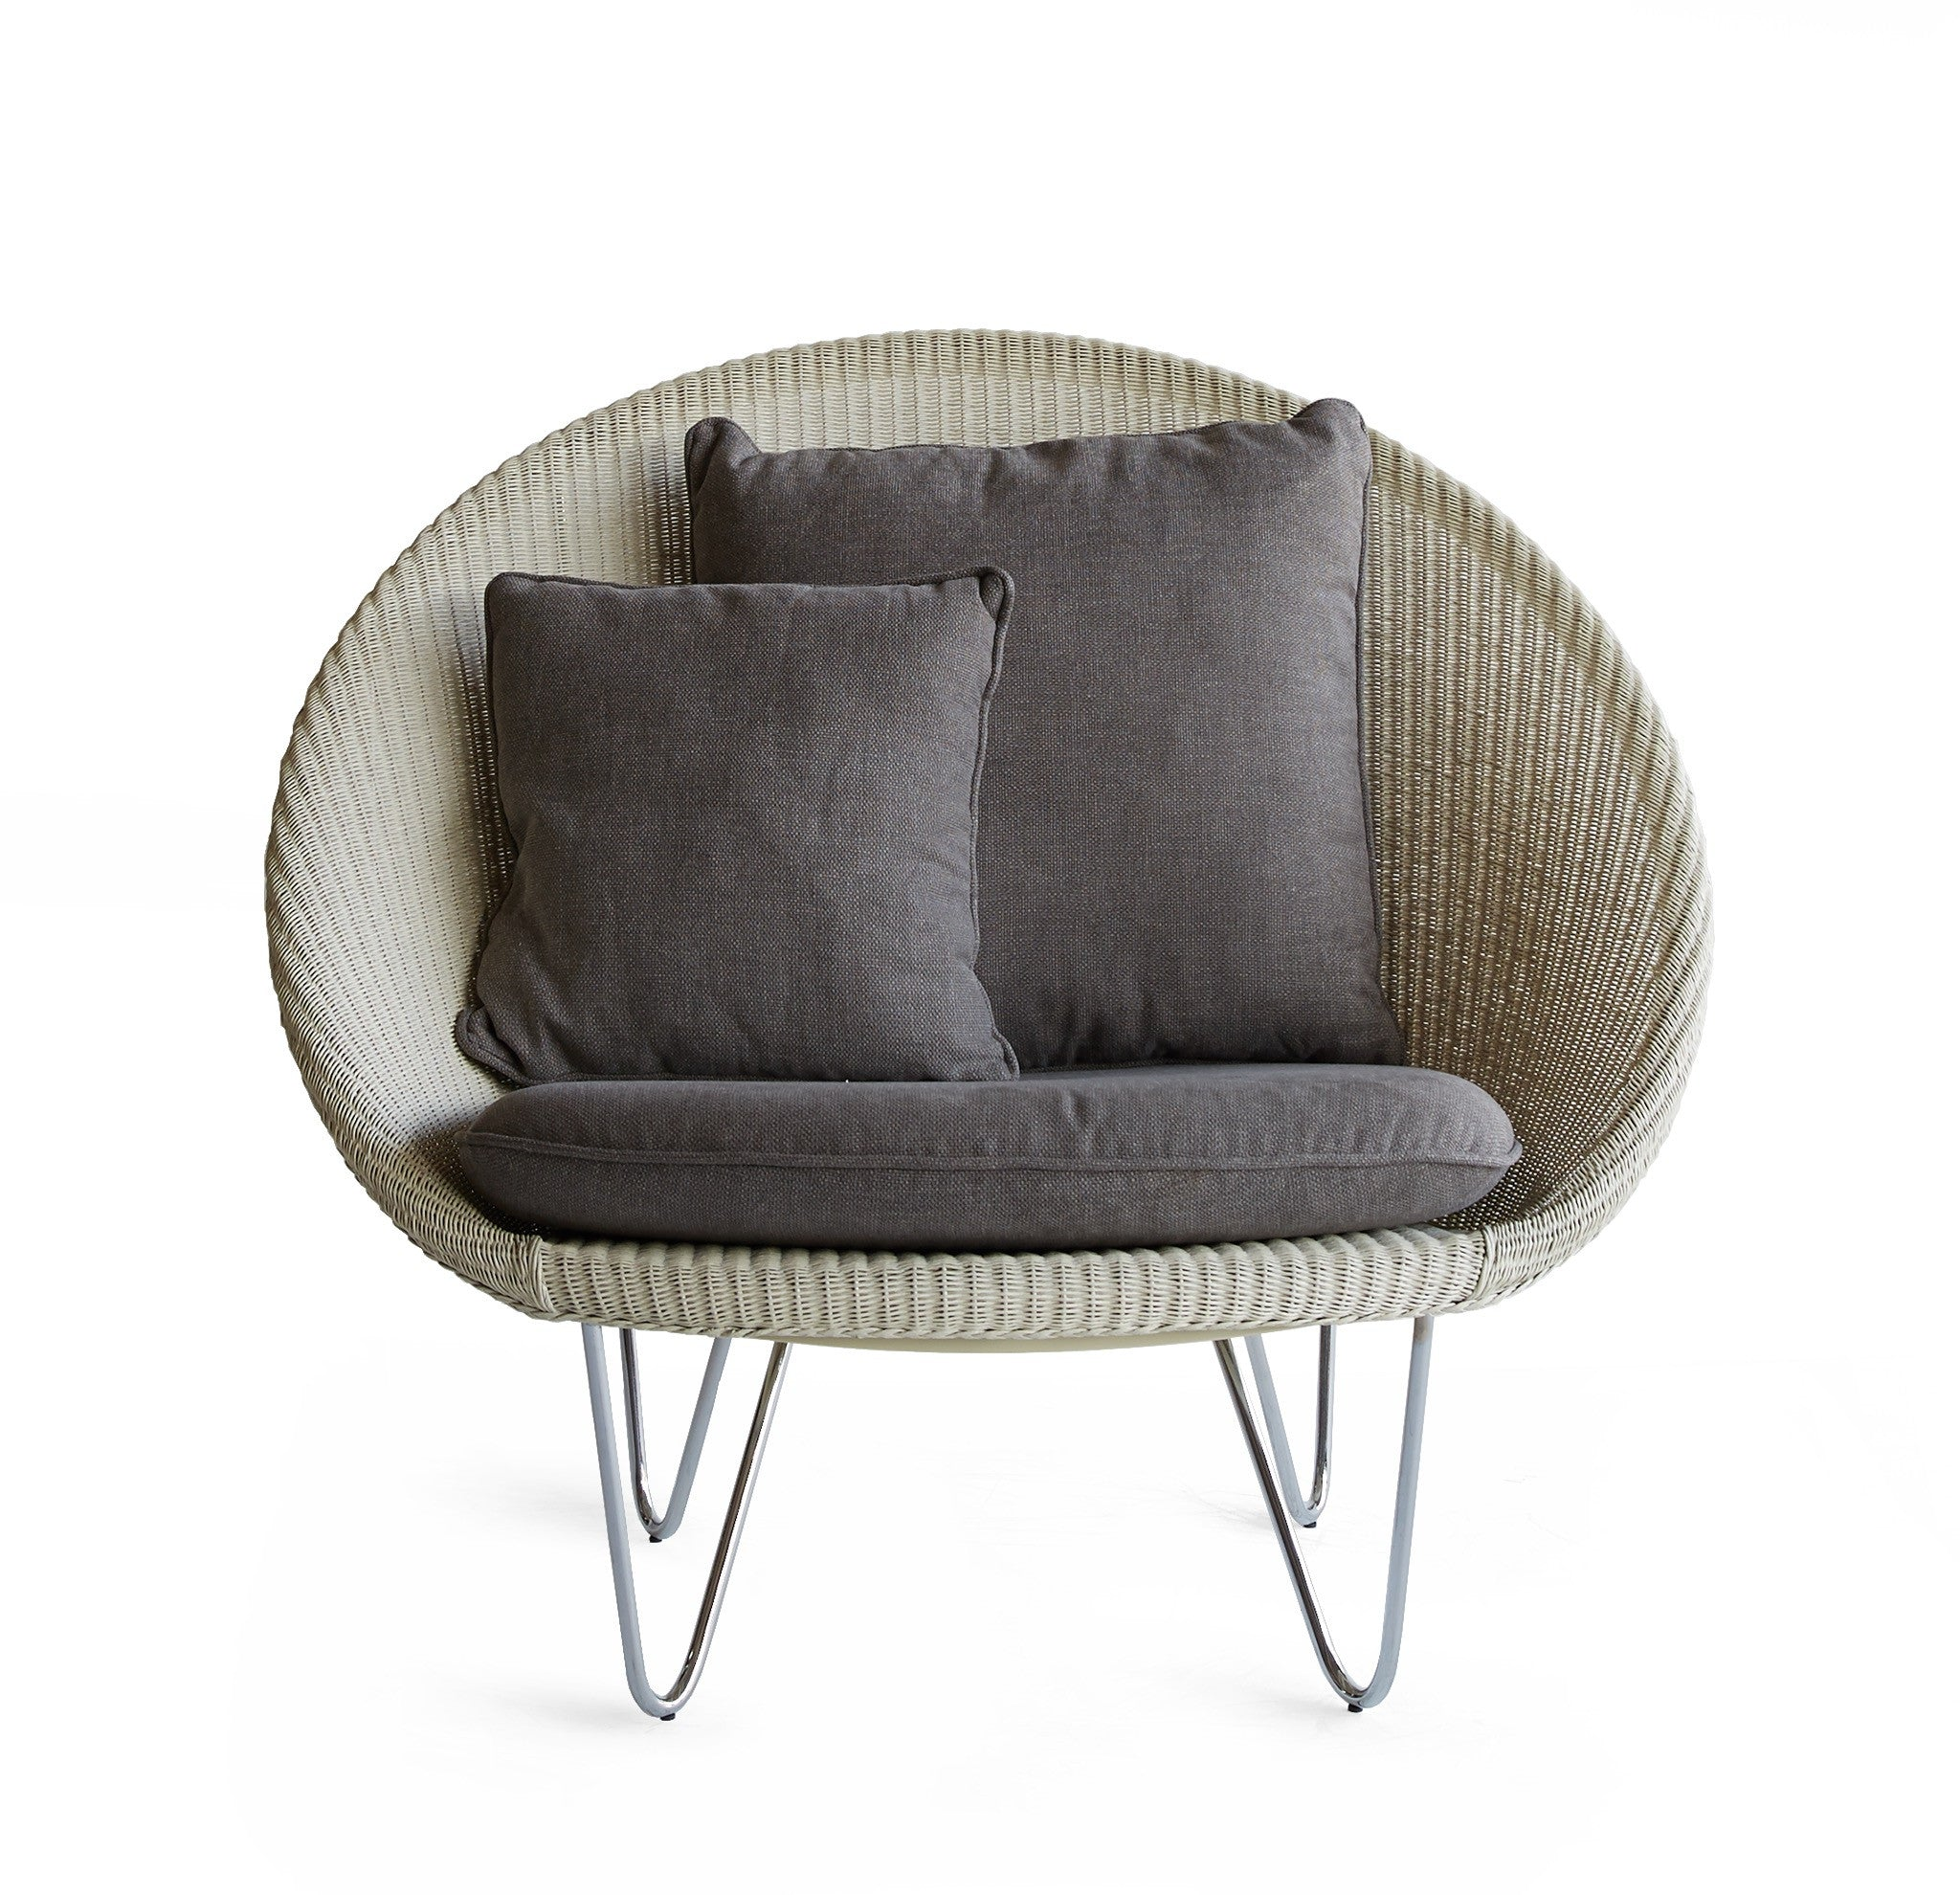 Joe Cocoon Chair | Broken White MG-Vincent Sheppard-Originals Furniture - 1